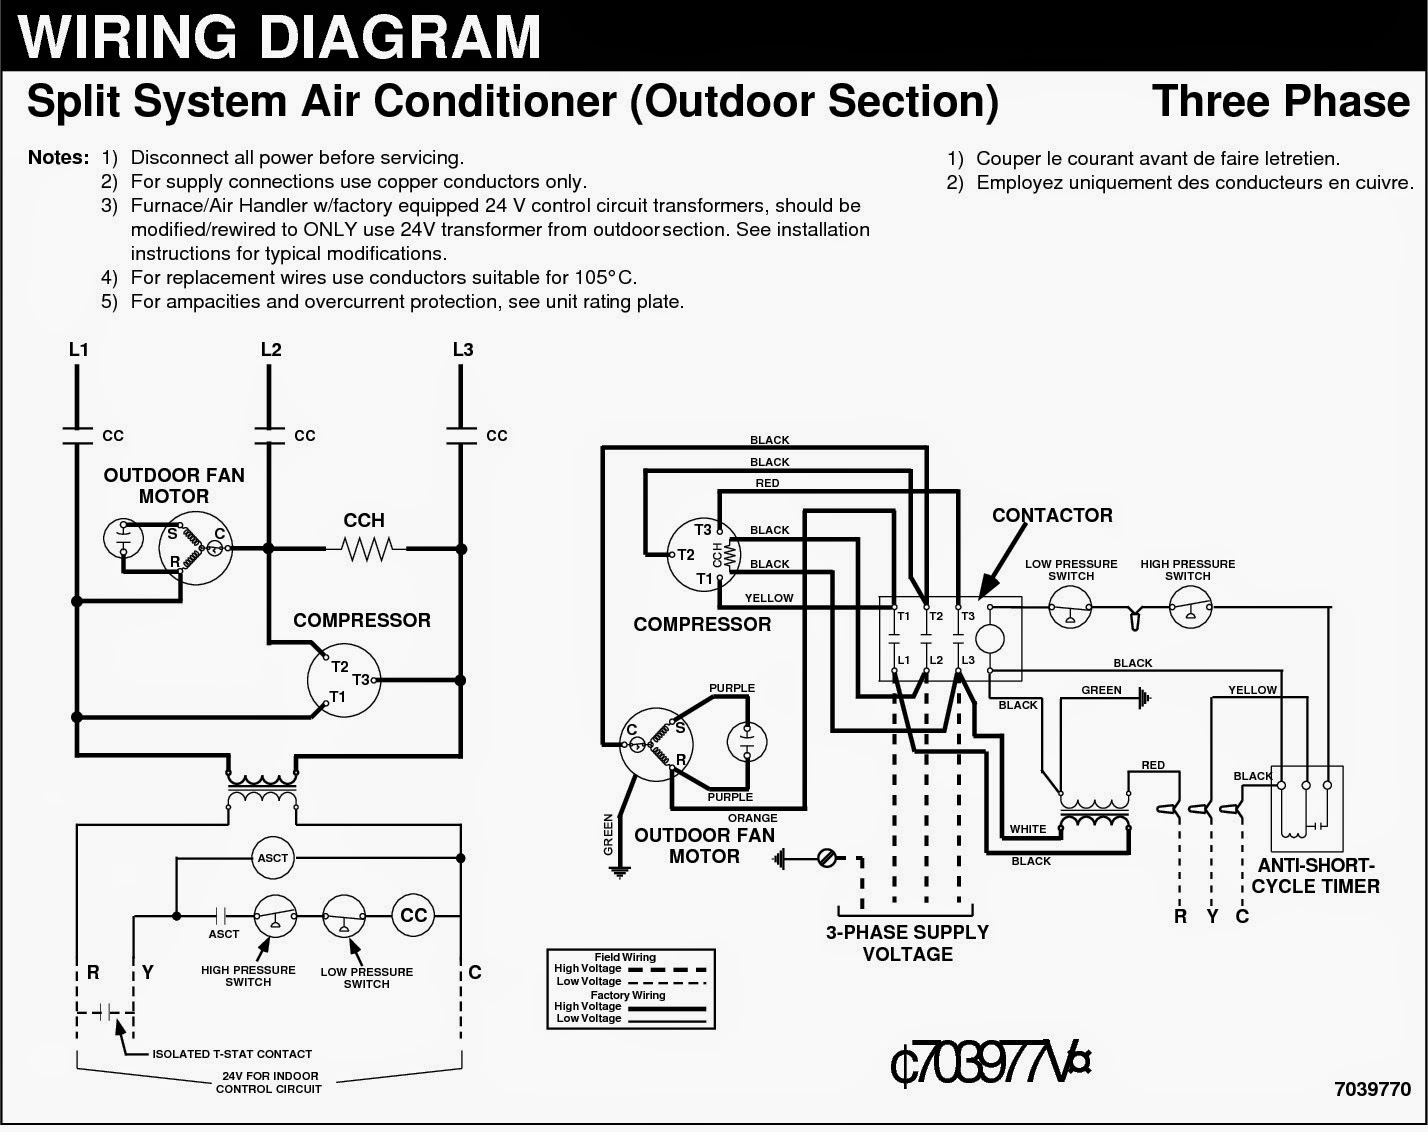 Electrical Wiring Diagrams For Air Conditioning Systems Part Two Circuit Board Basics Fig13 Split Cooling Units Three Phase Diagram